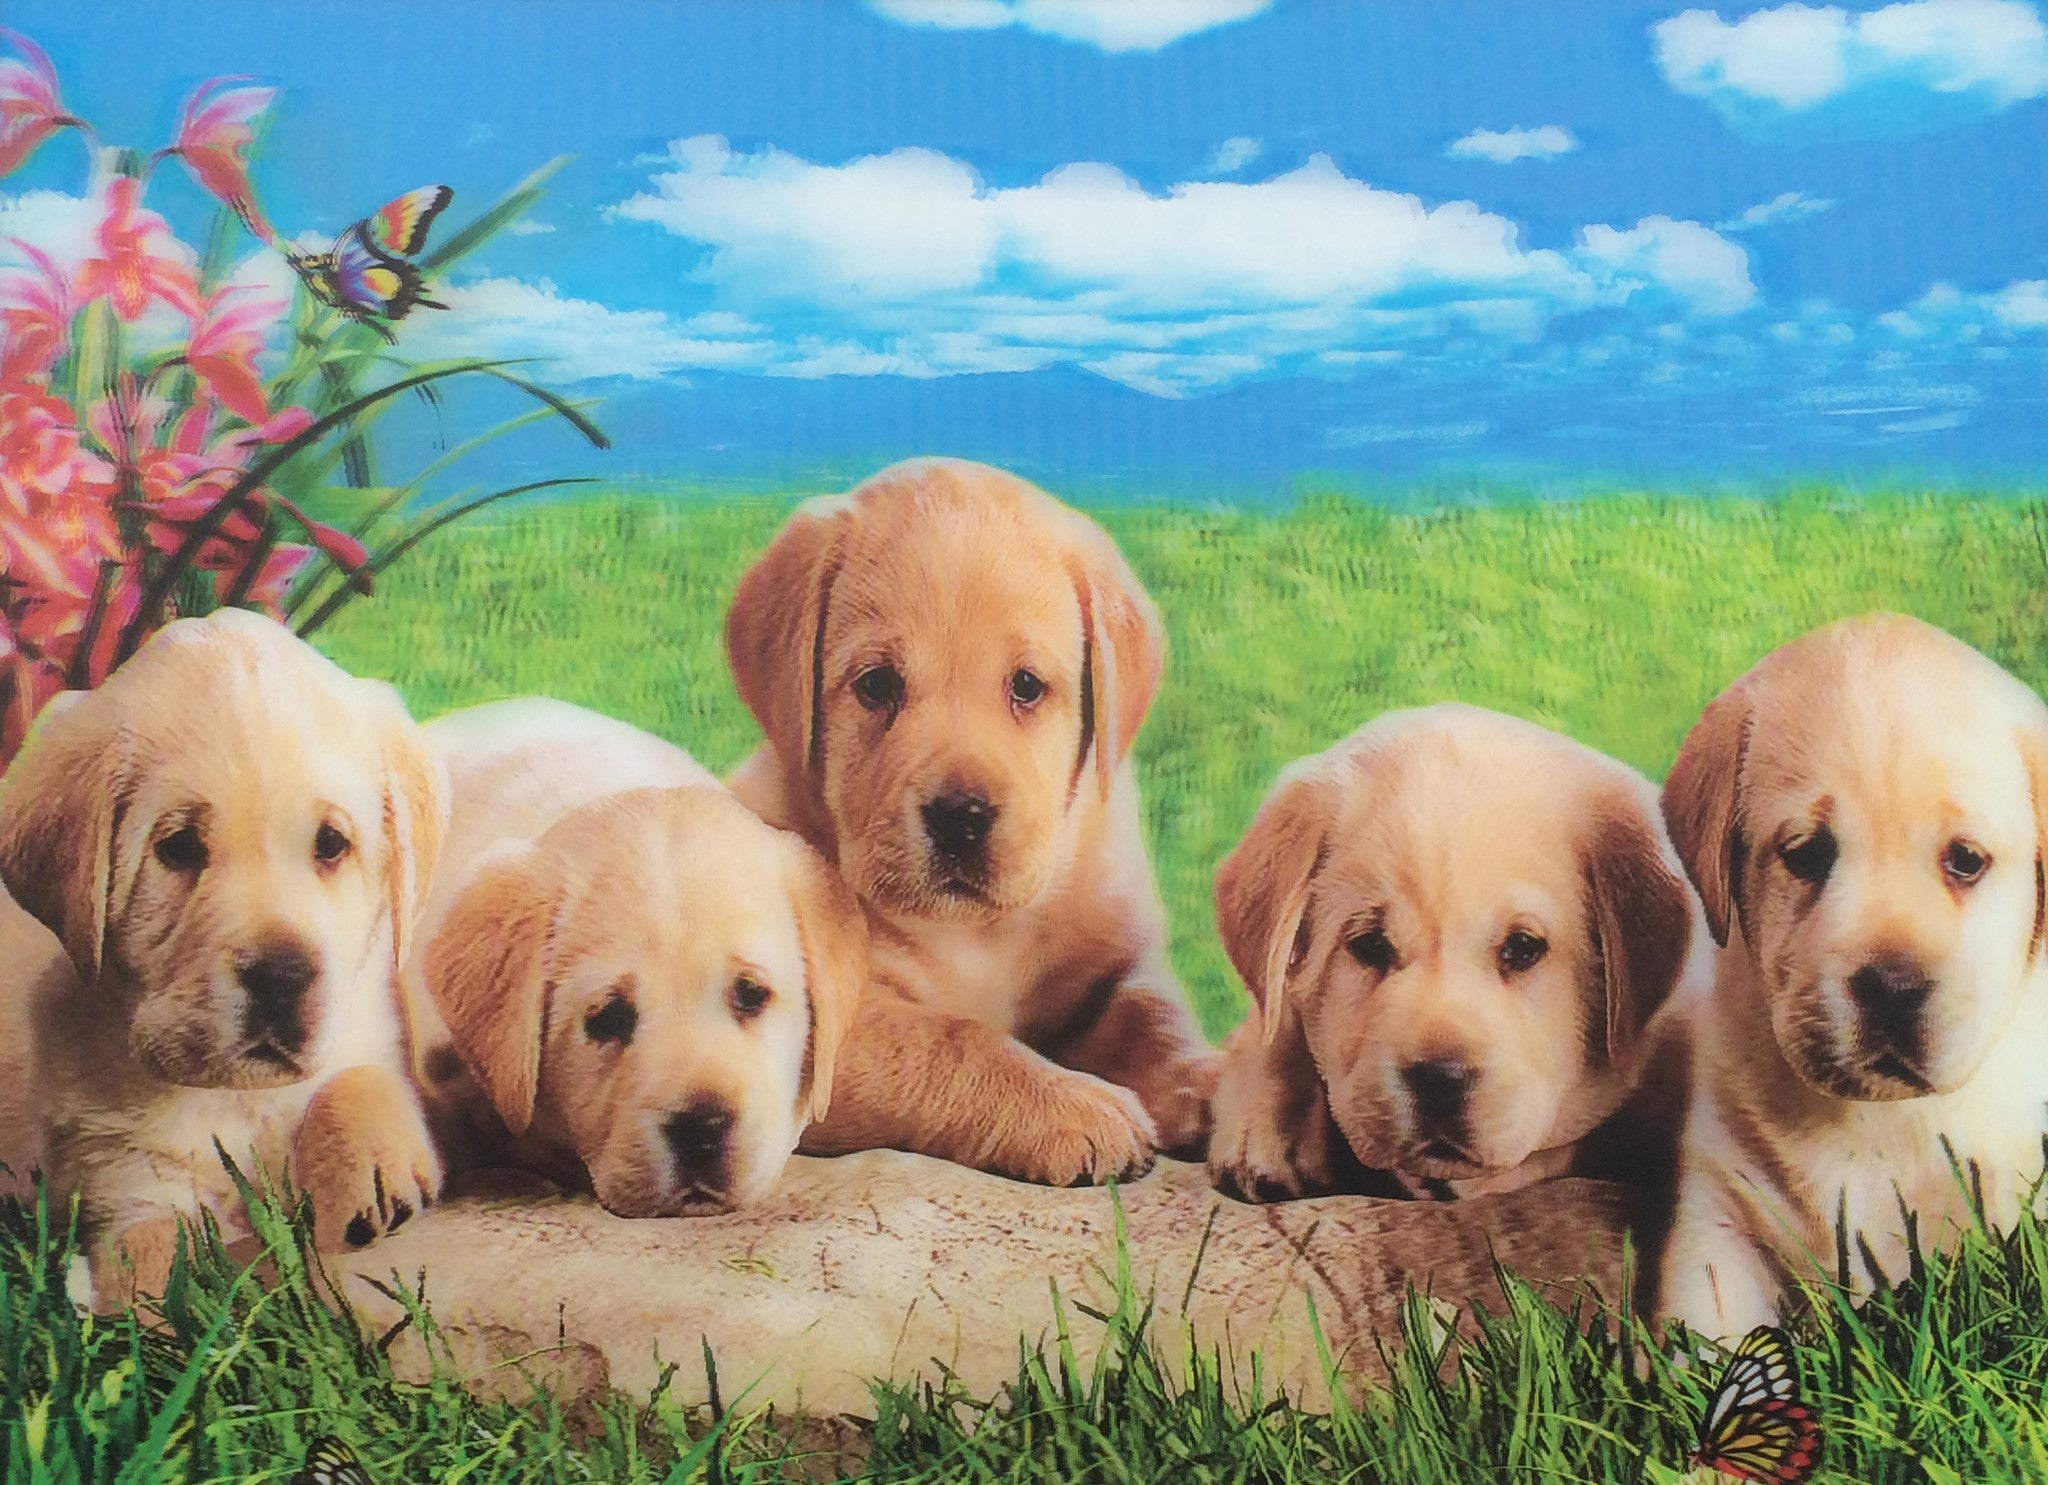 Dc 20 Dogs 5 Lab Puppies 3d Picture 3dddpicturescom